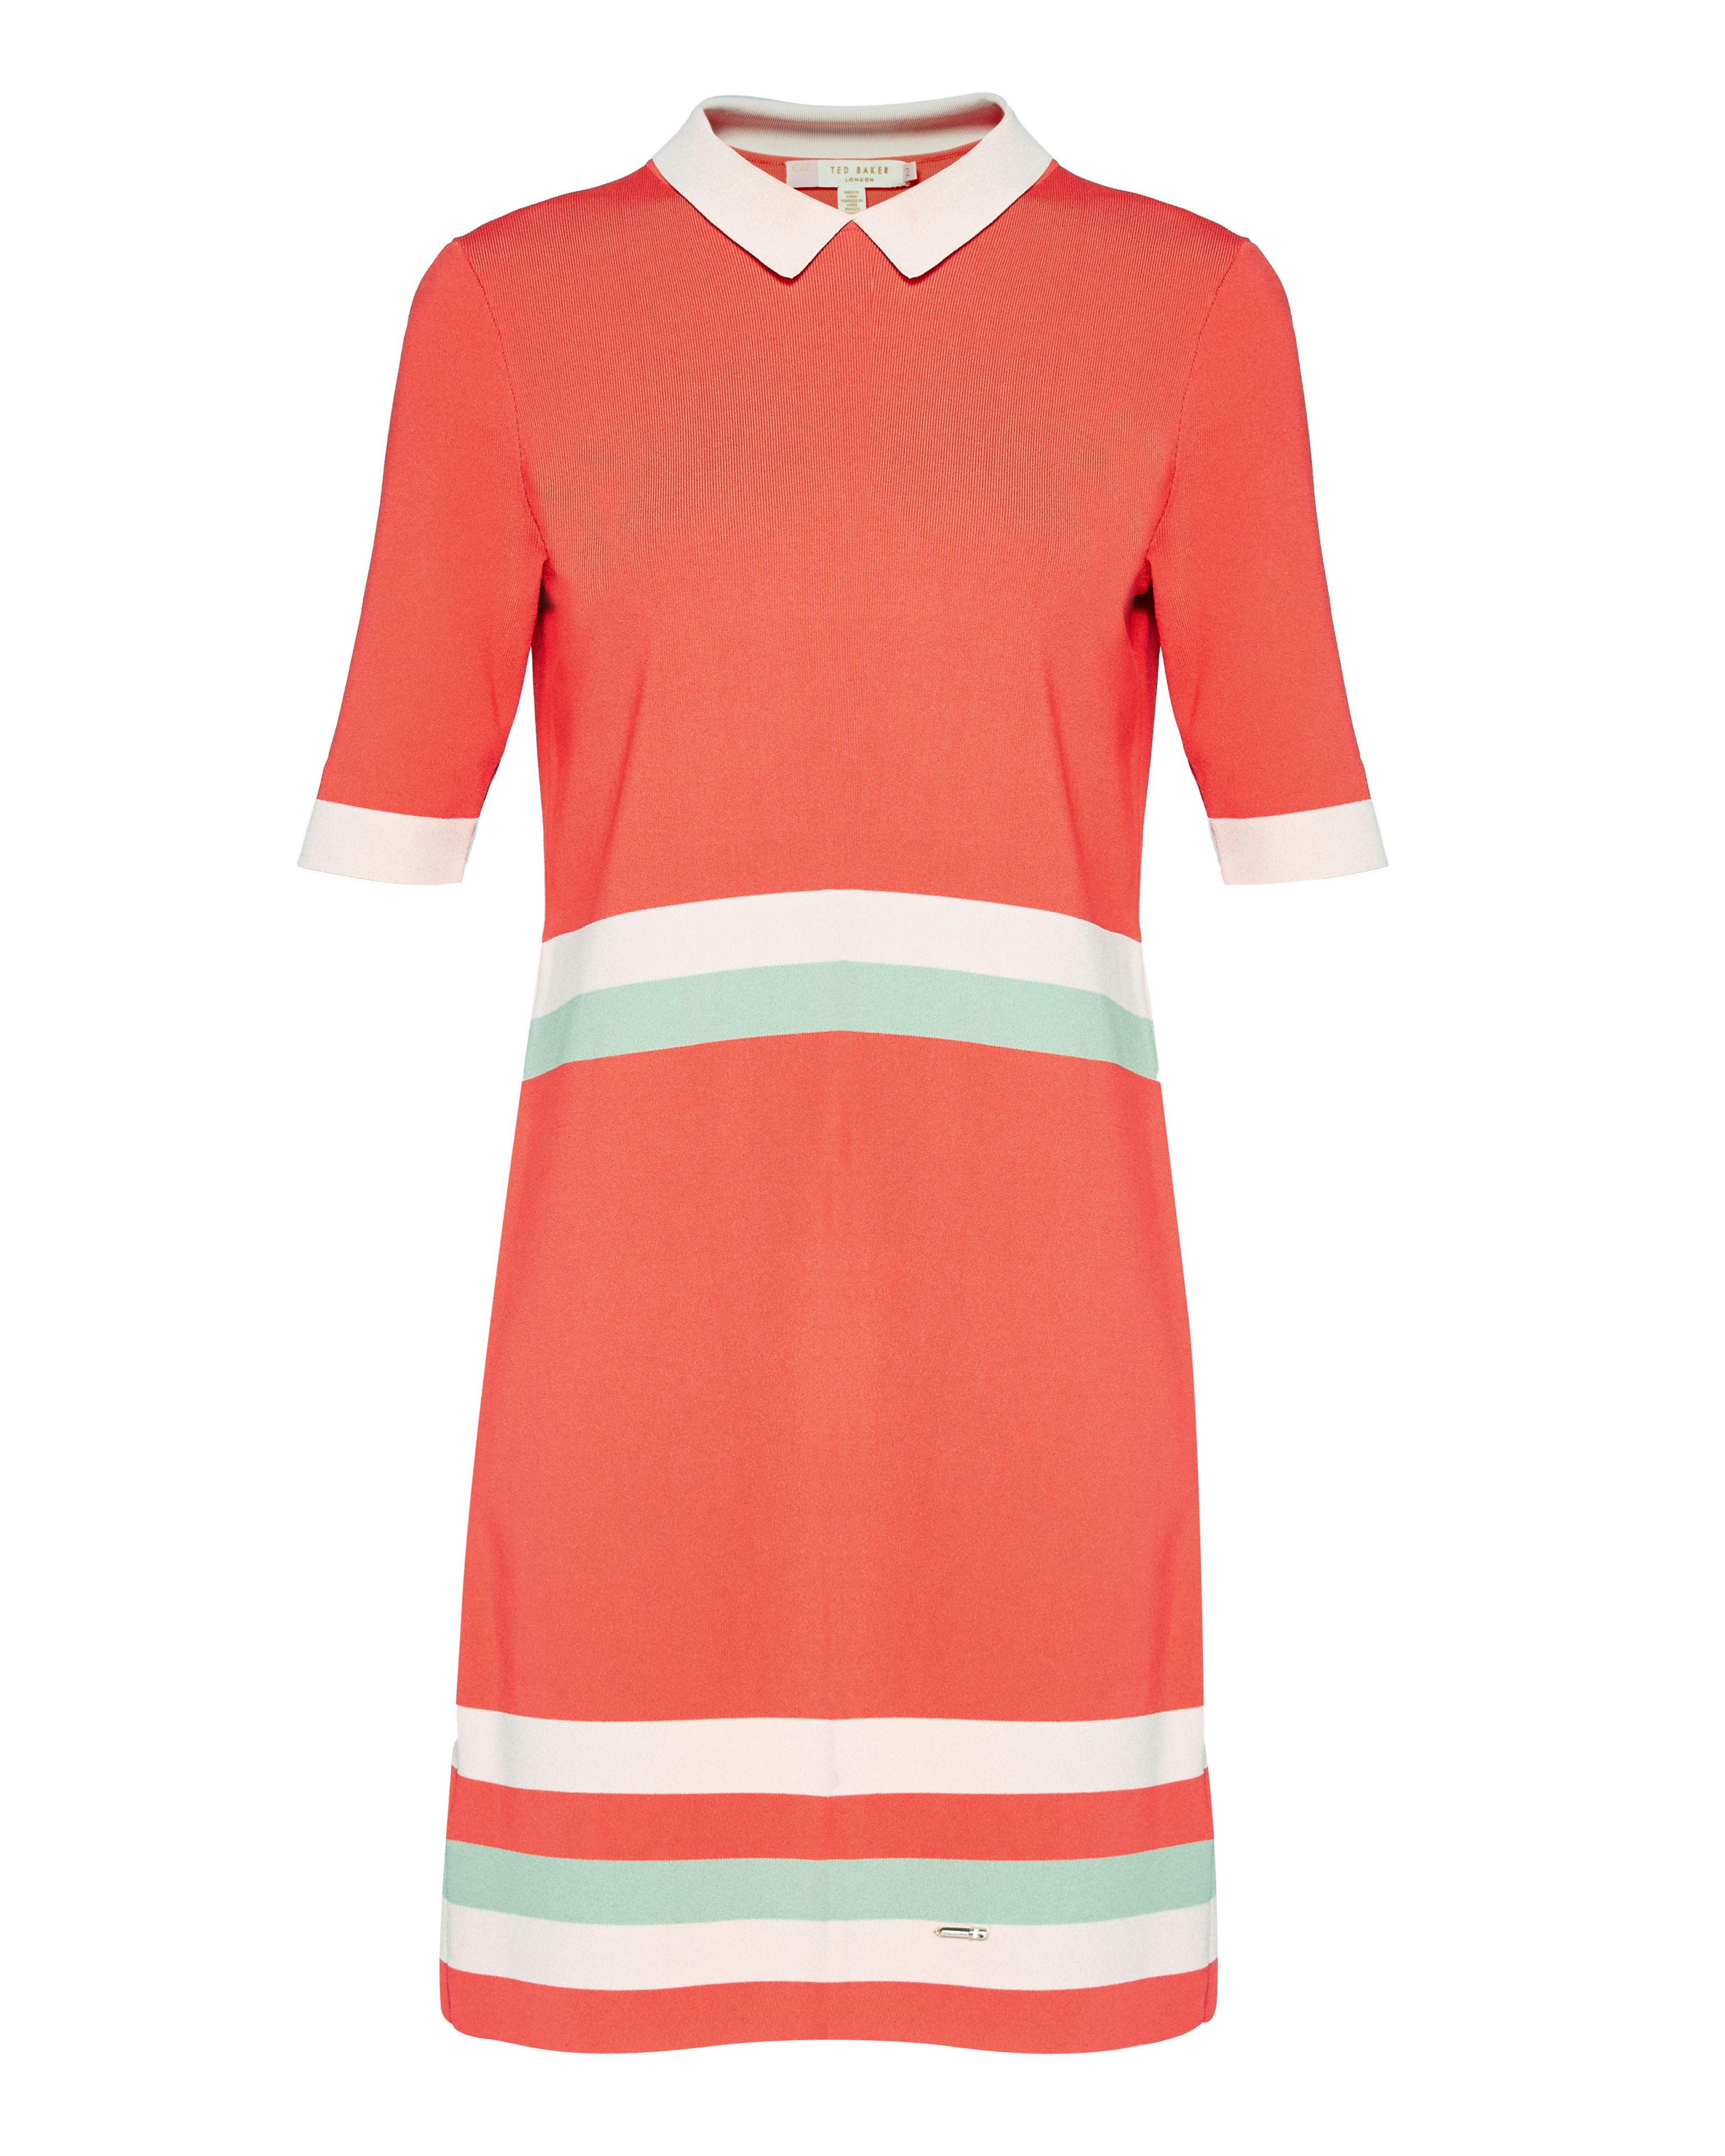 Ted Baker Origami Colour-Block Knitted Dress, Coral